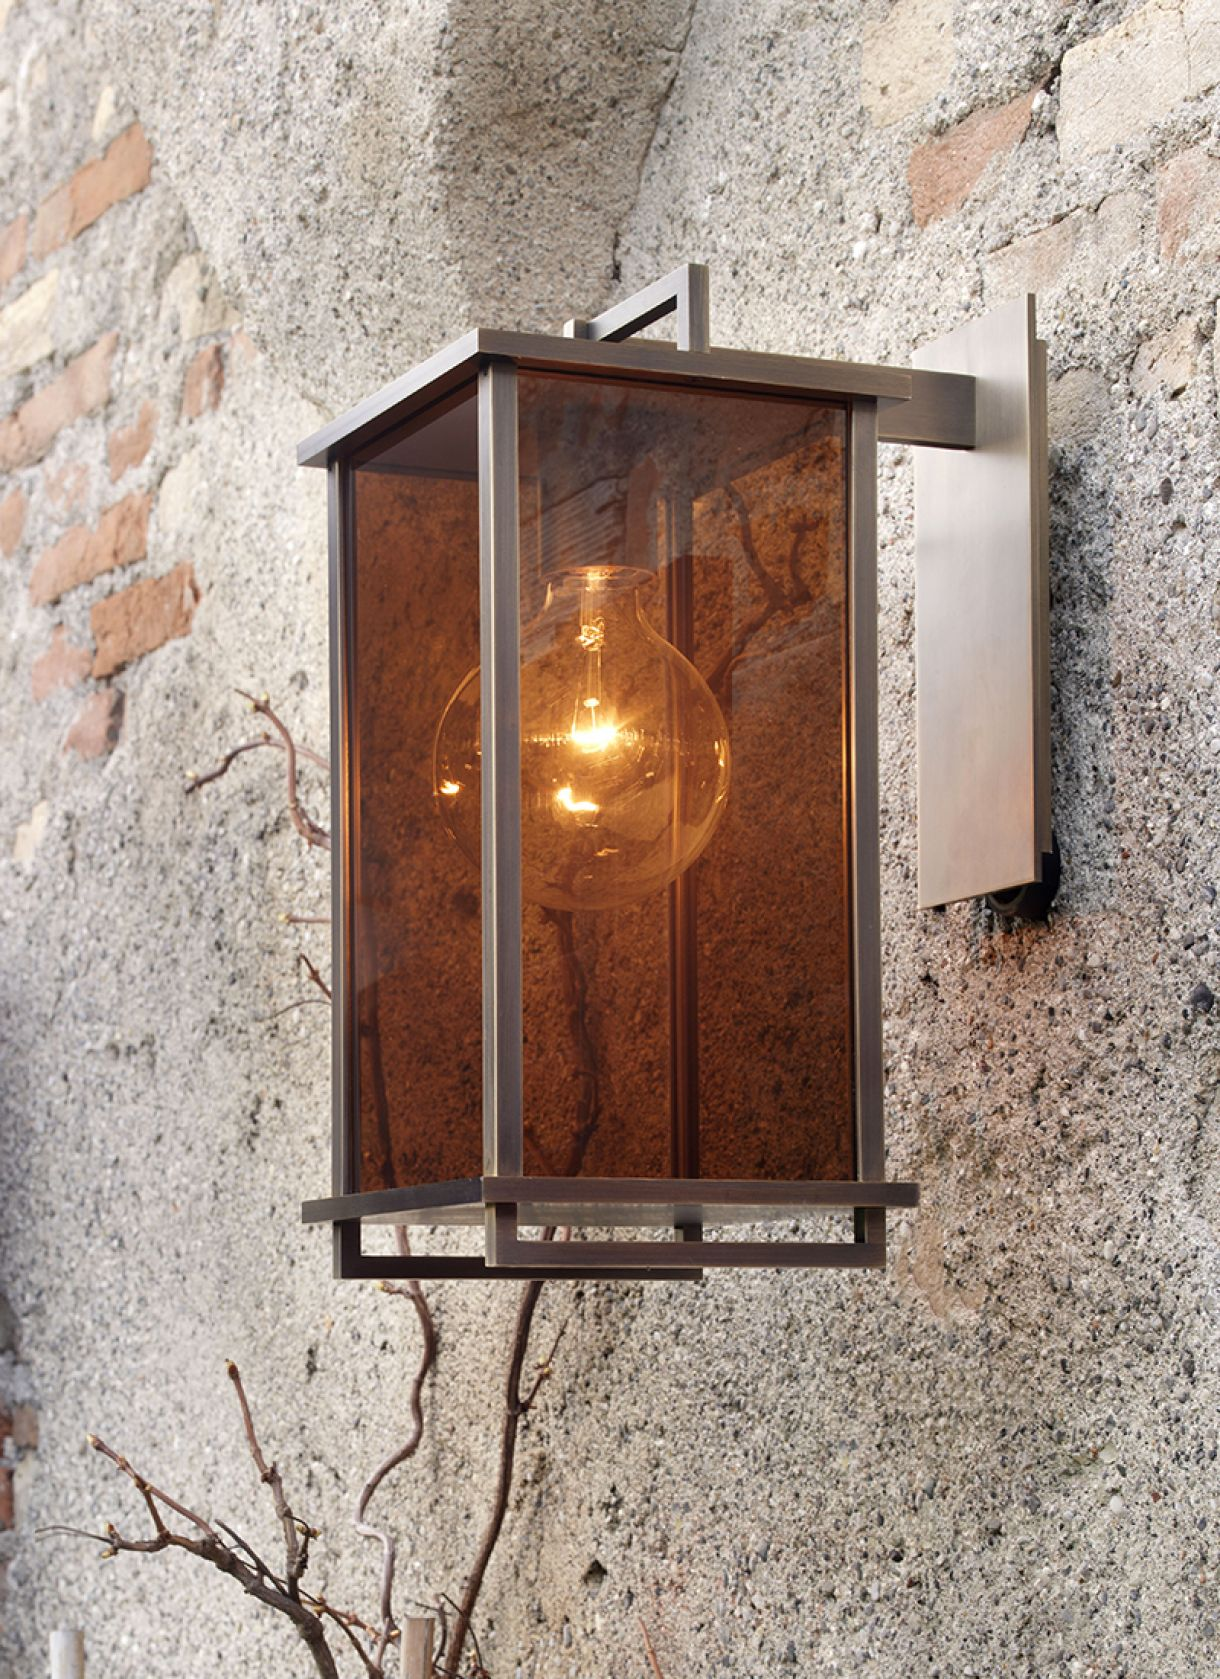 Ikon, wall lamp forming a cage from which light spreads